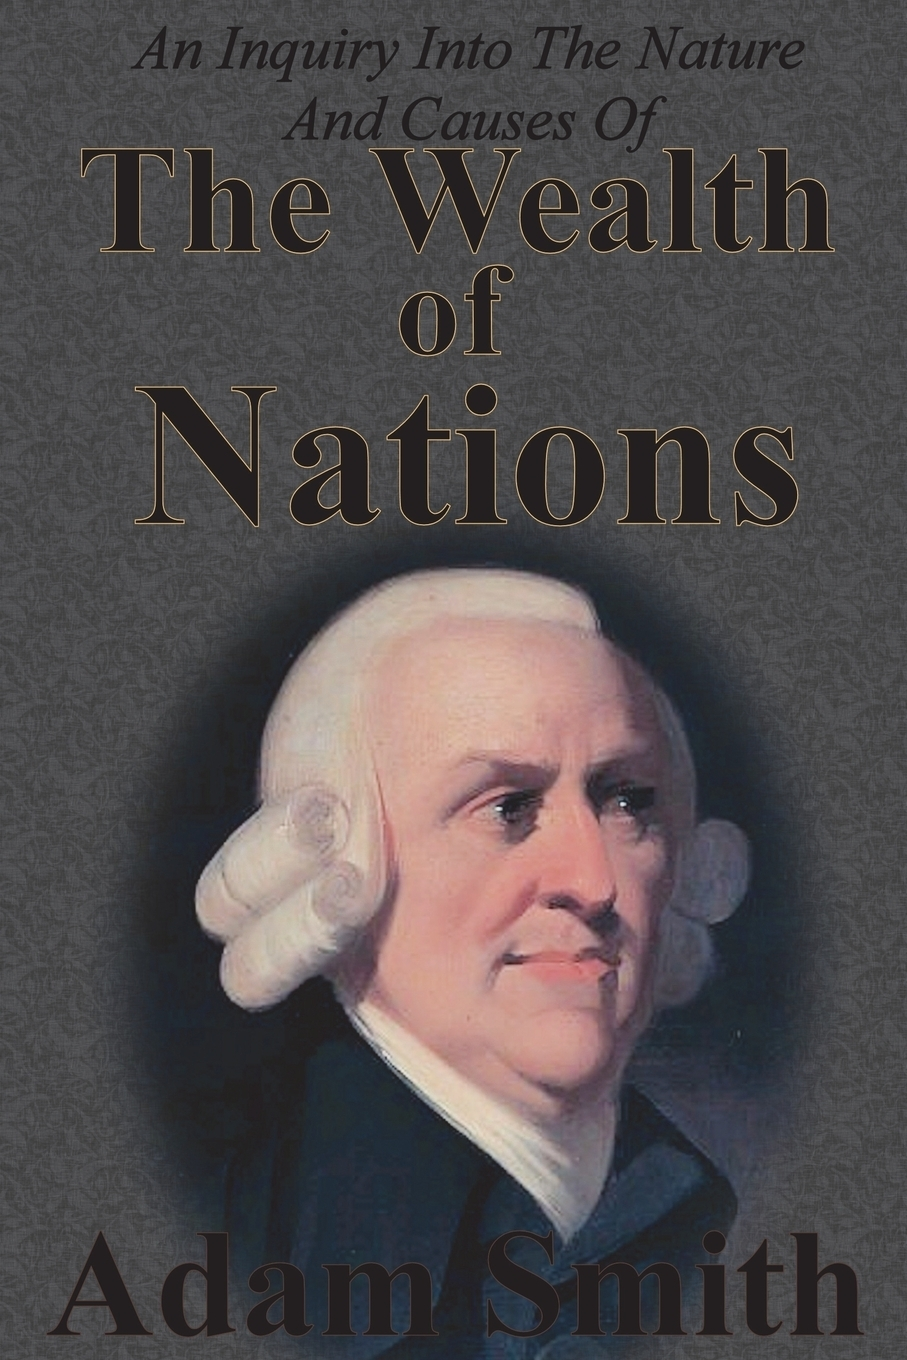 Adam Smith An Inquiry Into The Nature And Causes Of The Wealth Of Nations adam smith an inquiry into the nature and causes of the wealth of nations vol 2